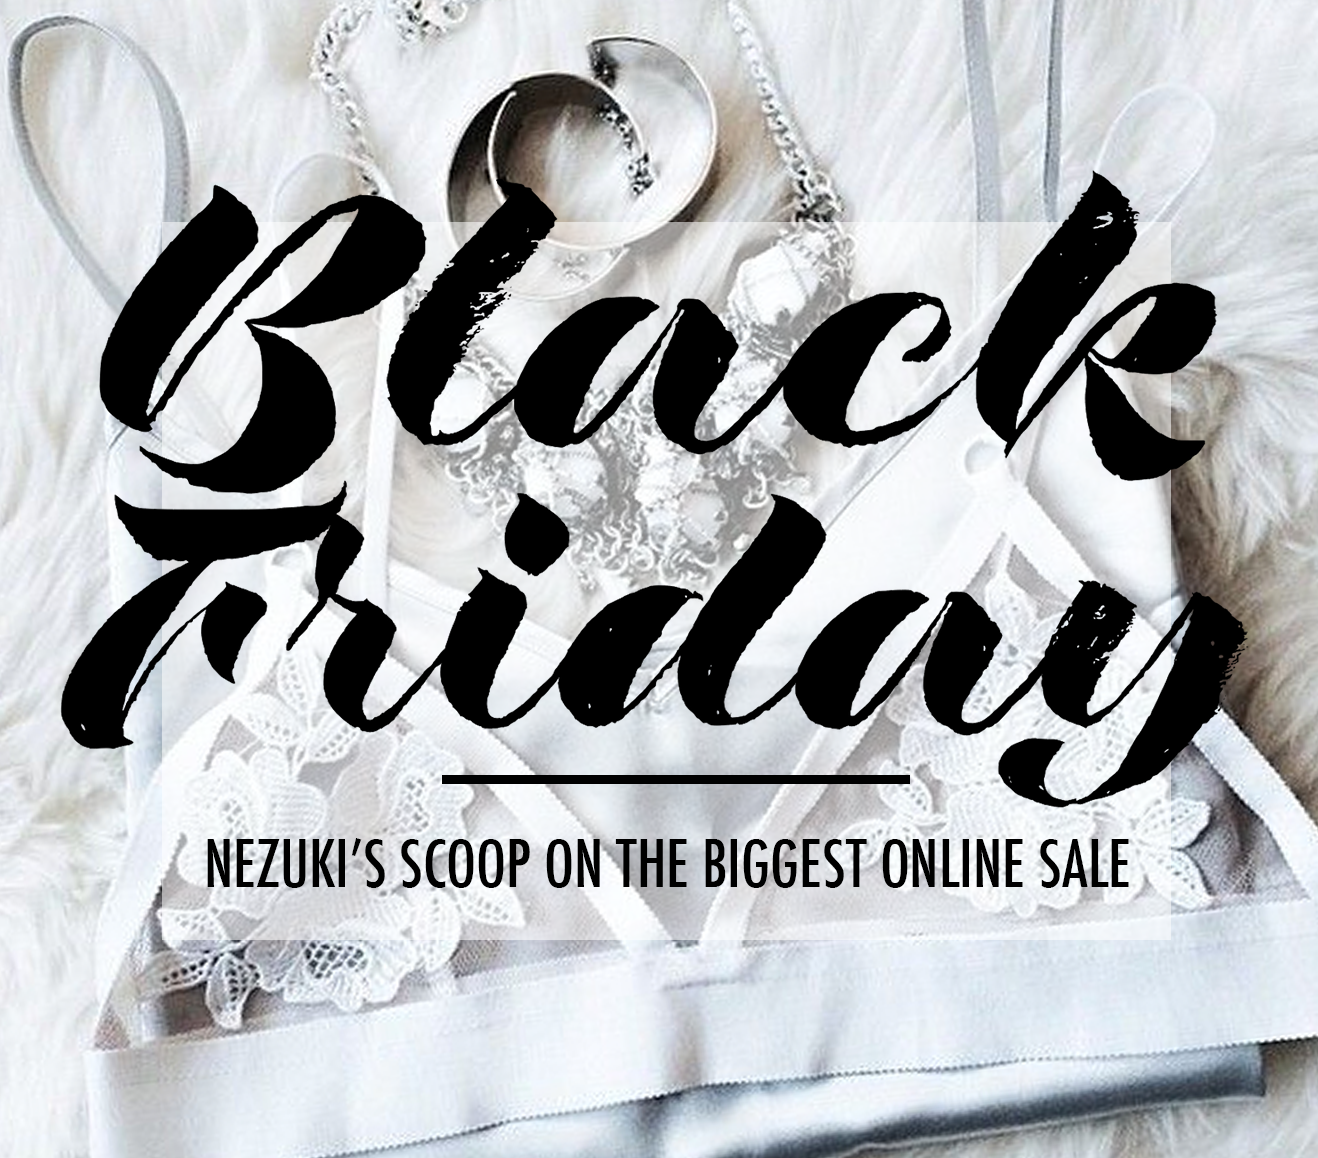 Cuponation, Black Friday, sale, affordable buys, black friday sales, cheap clothing and fashion, fashion accessories, australian online shopping, shopping sale, online shopping, online bargains, style, blogger, sydney blogger, fashion, coupons, coupon australia, ASOS, Shopbop, deals online, aussie deals, the iconic